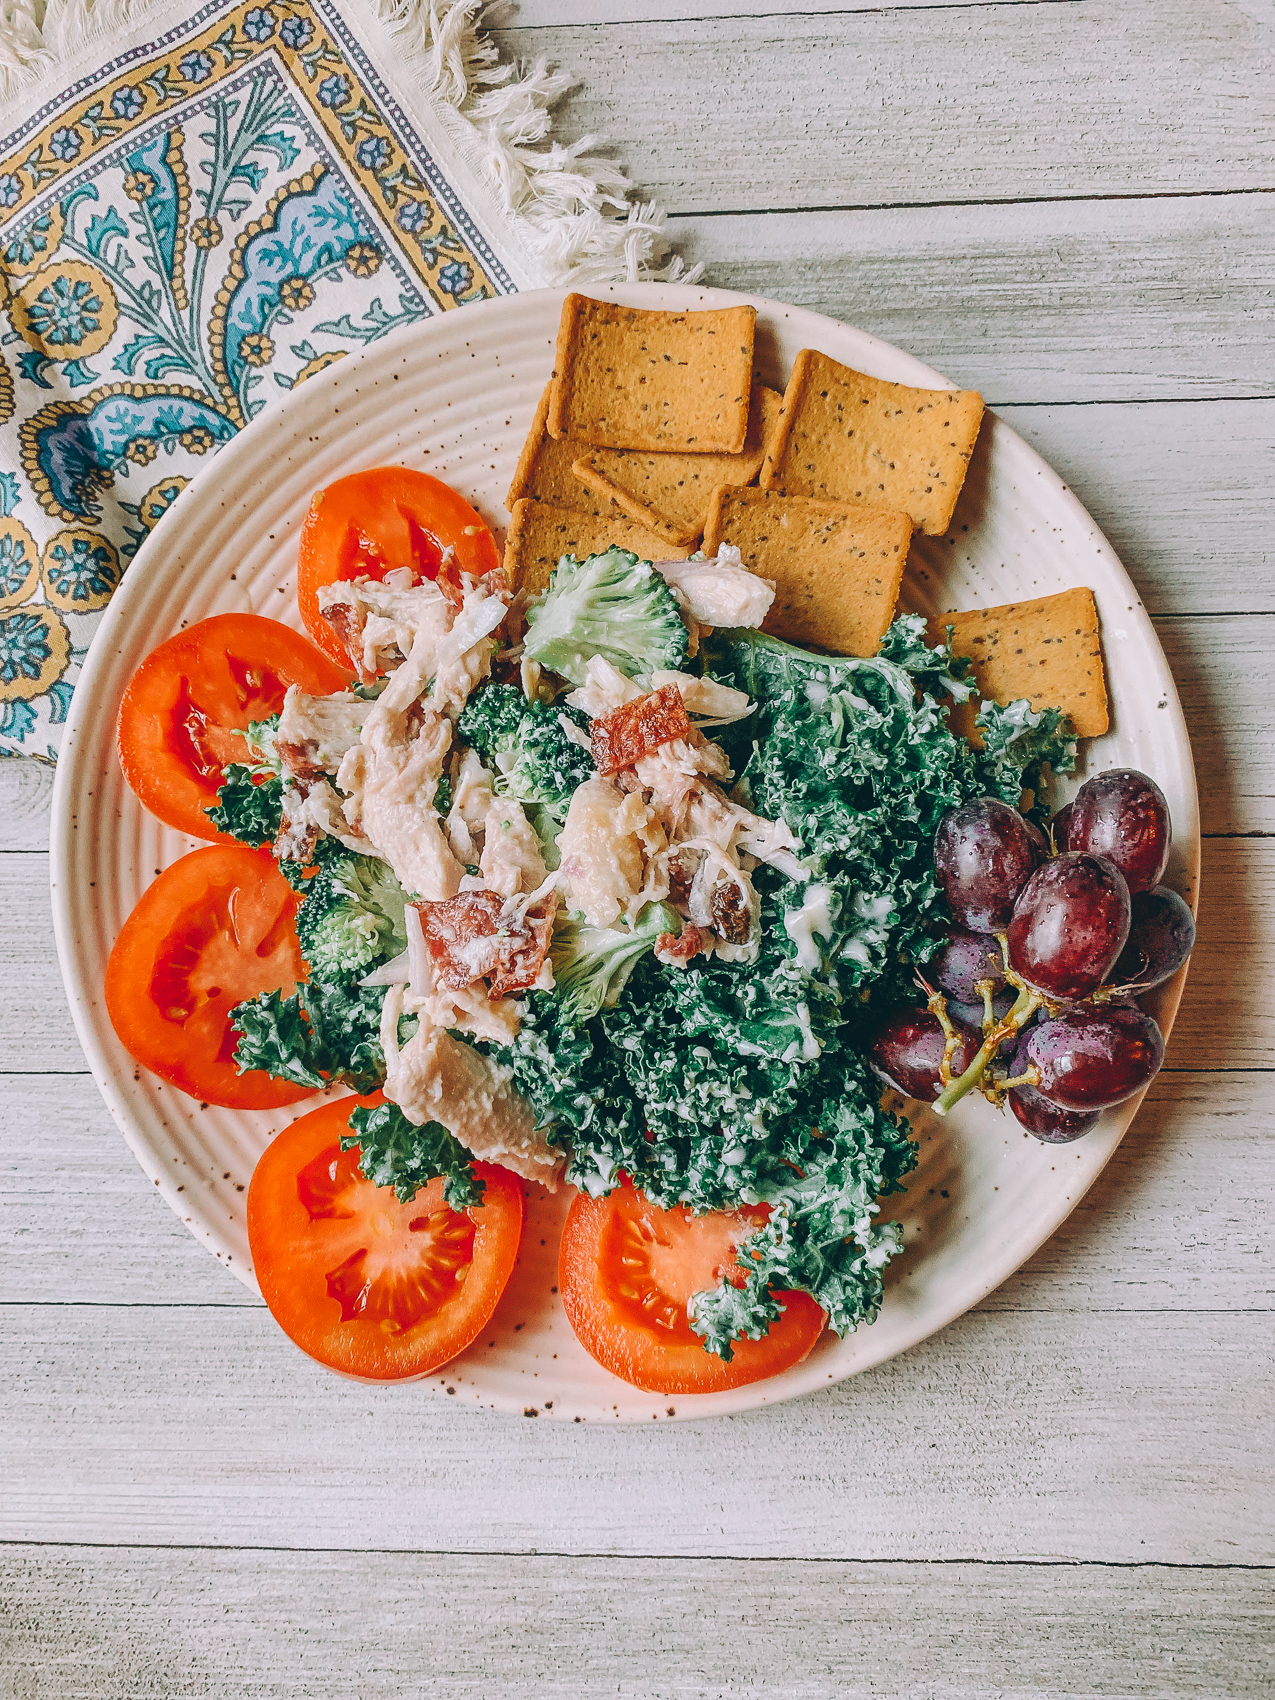 healthy gluten and dairy free chicken salad gluten free Mary's crackers lunch low carb